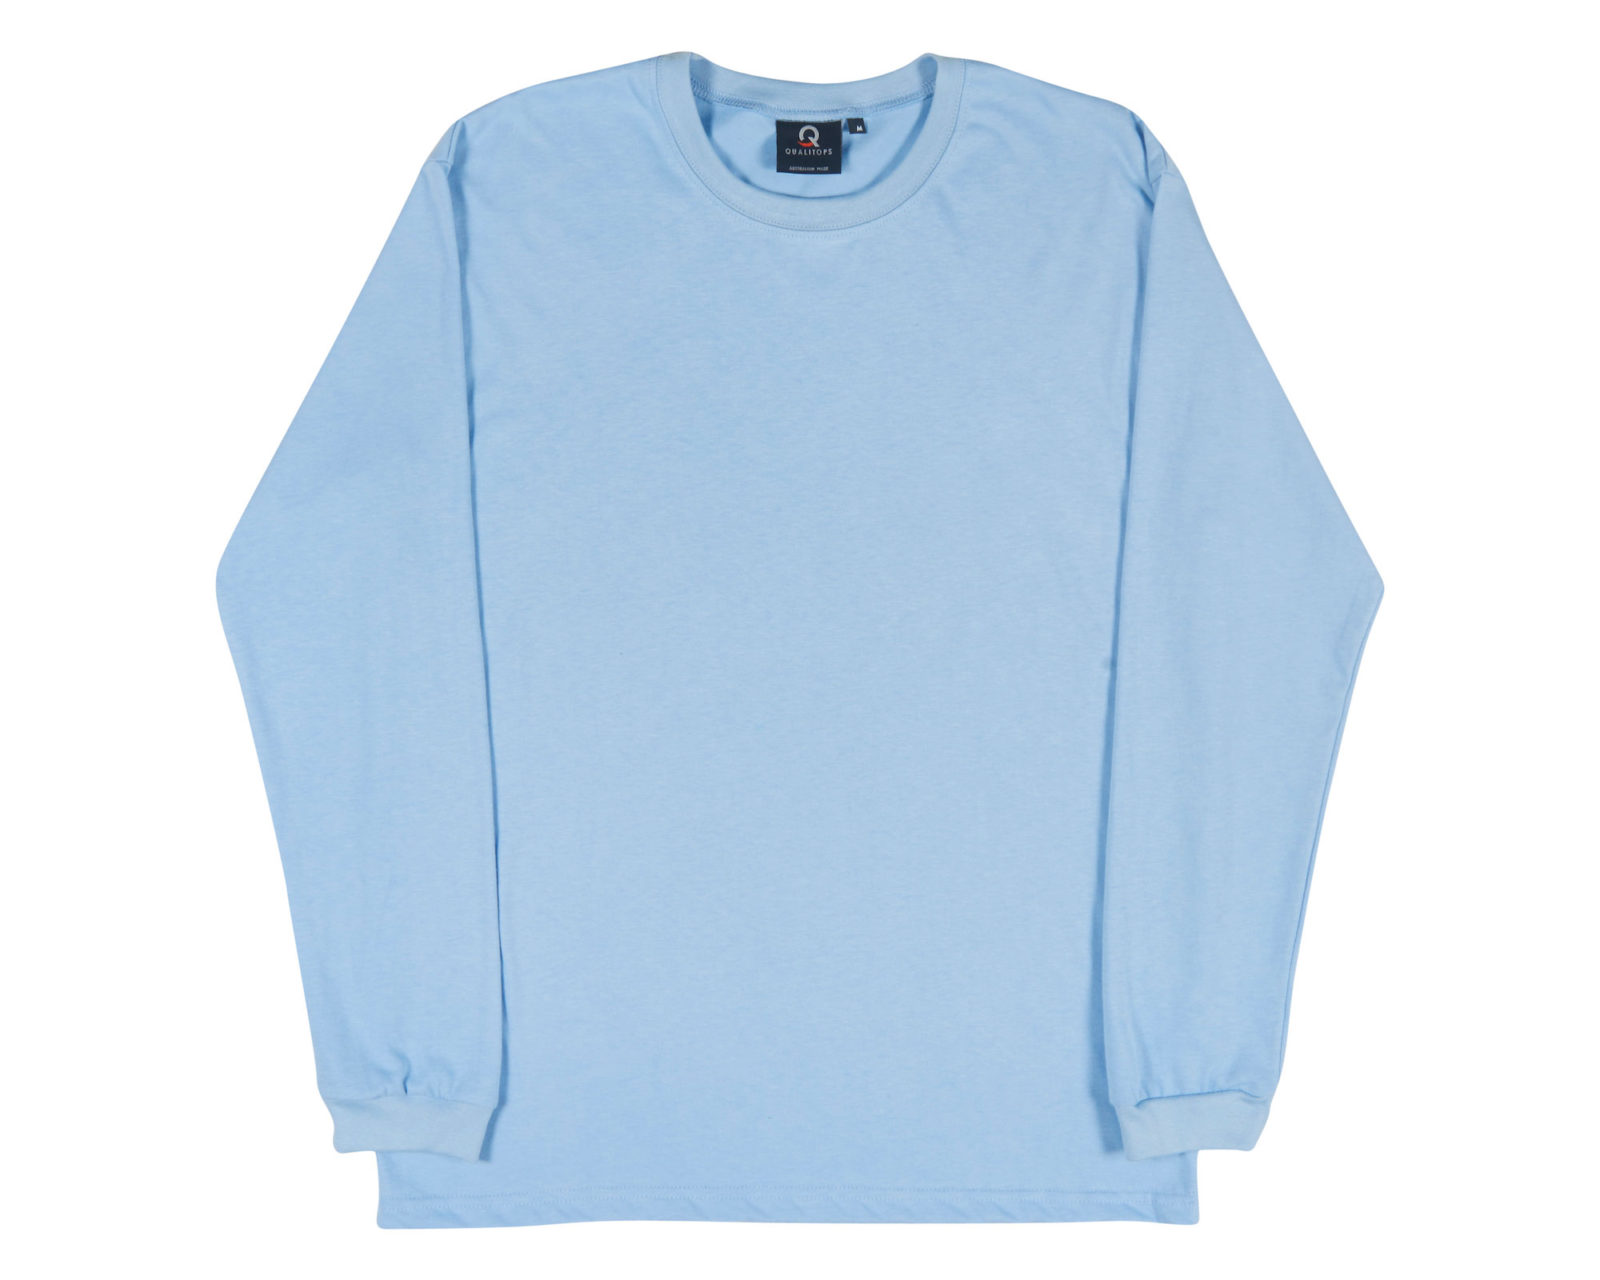 Qualitops Mens Long Sleeve Tee Cotton Australian made clothing